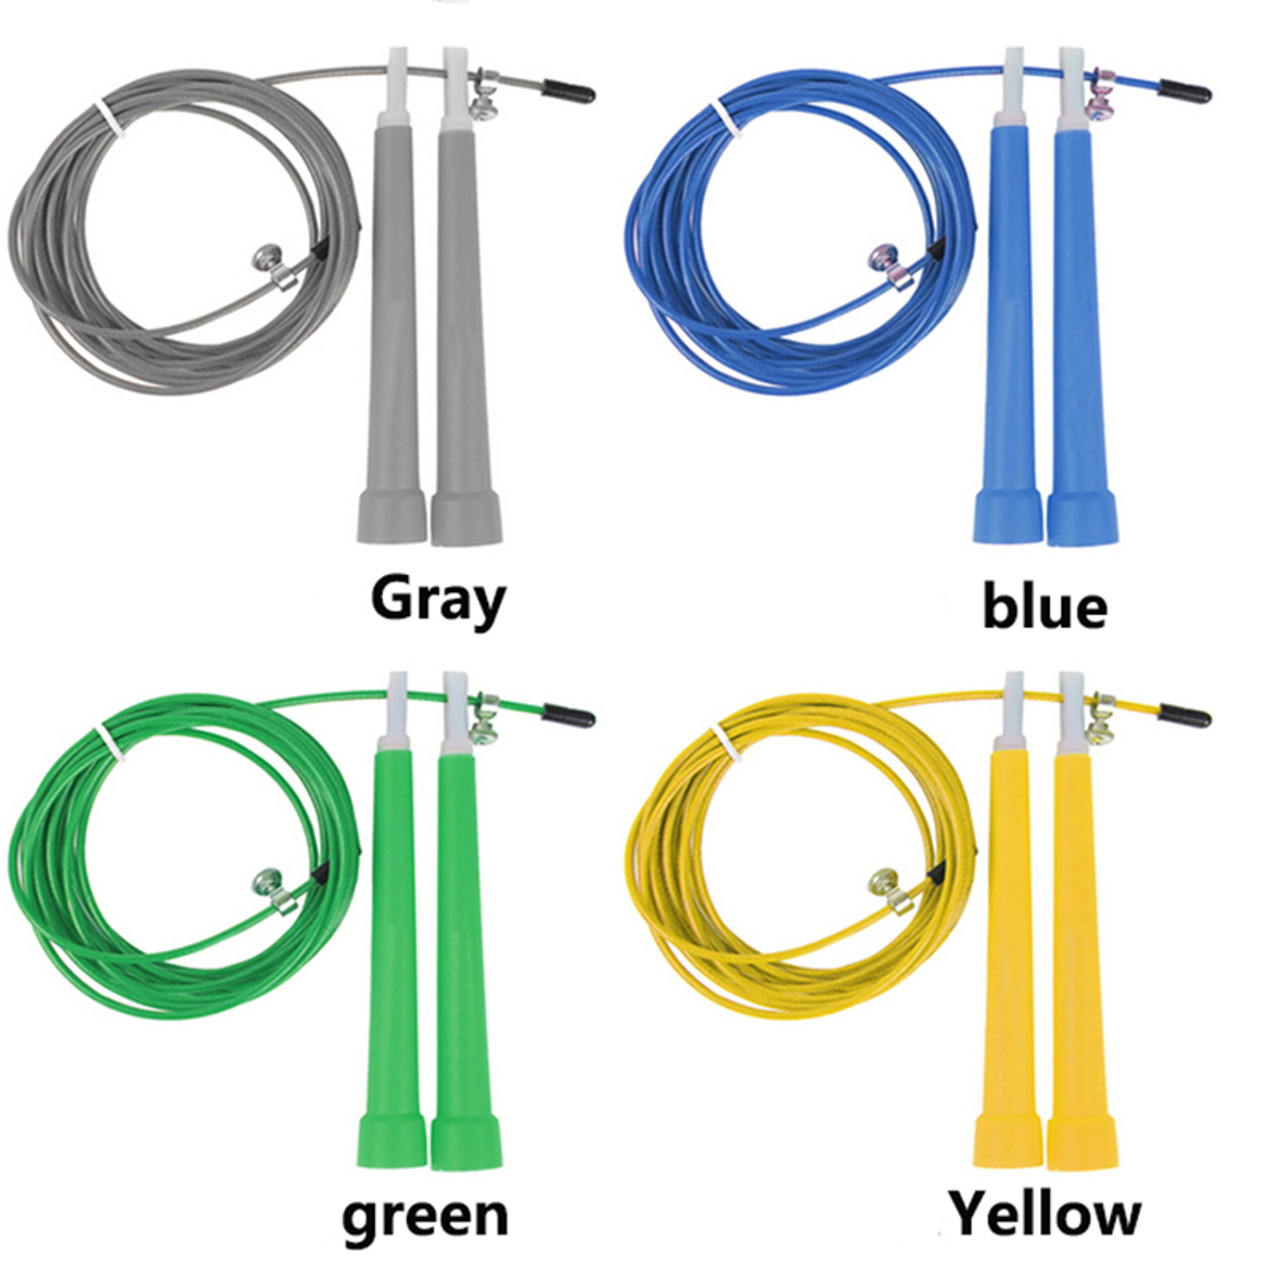 3M Jump Skipping Ropes Cable Steel Adjustable Fast Speed ABS Handle Jump Ropes